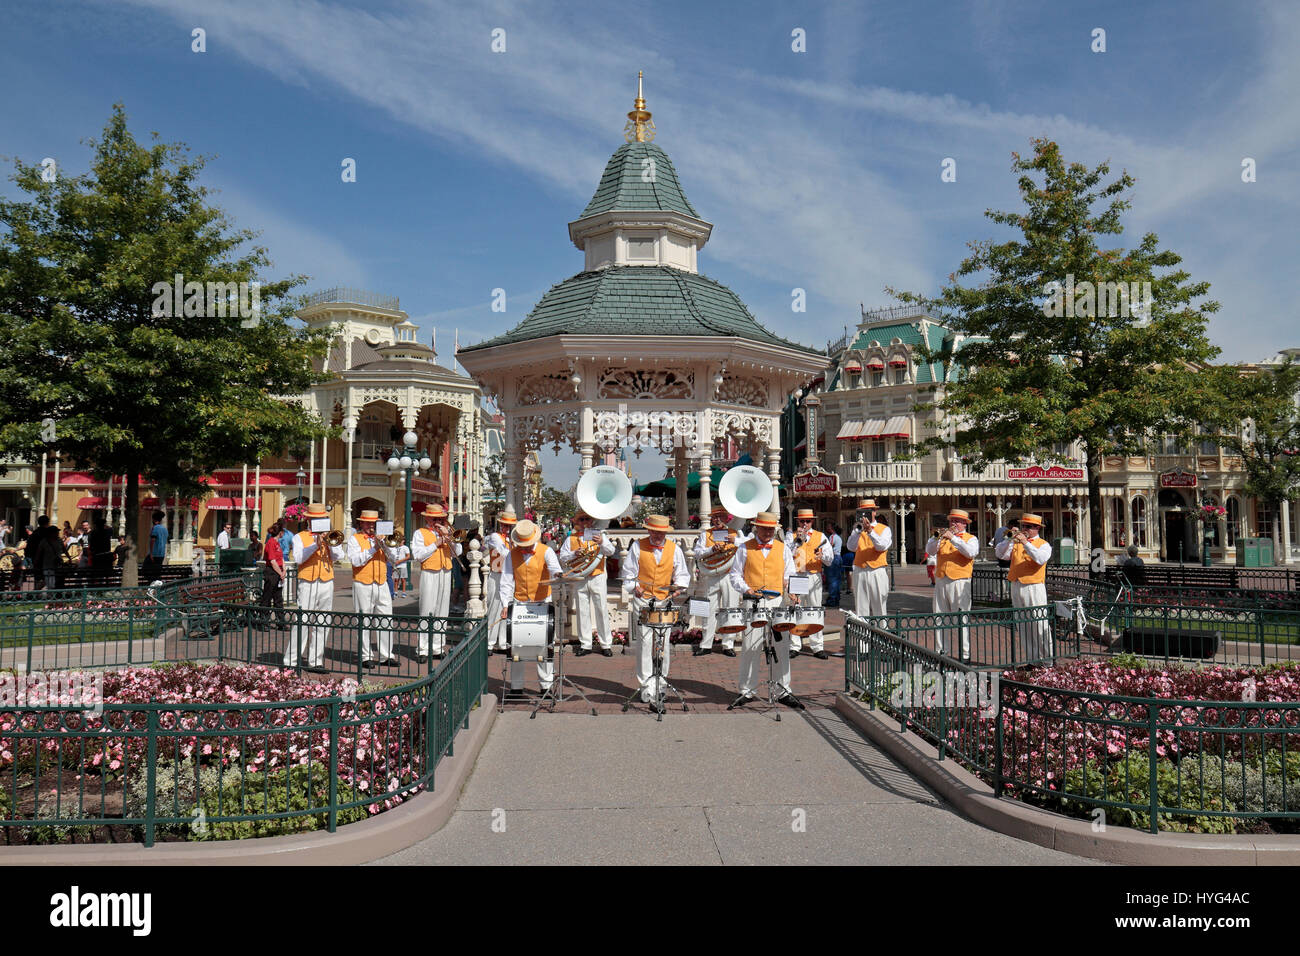 The Disneyland Summer brass band in fornt of the bandstand near the entrance of Disneyland Paris, Marne-la-Vallée, - Stock Image